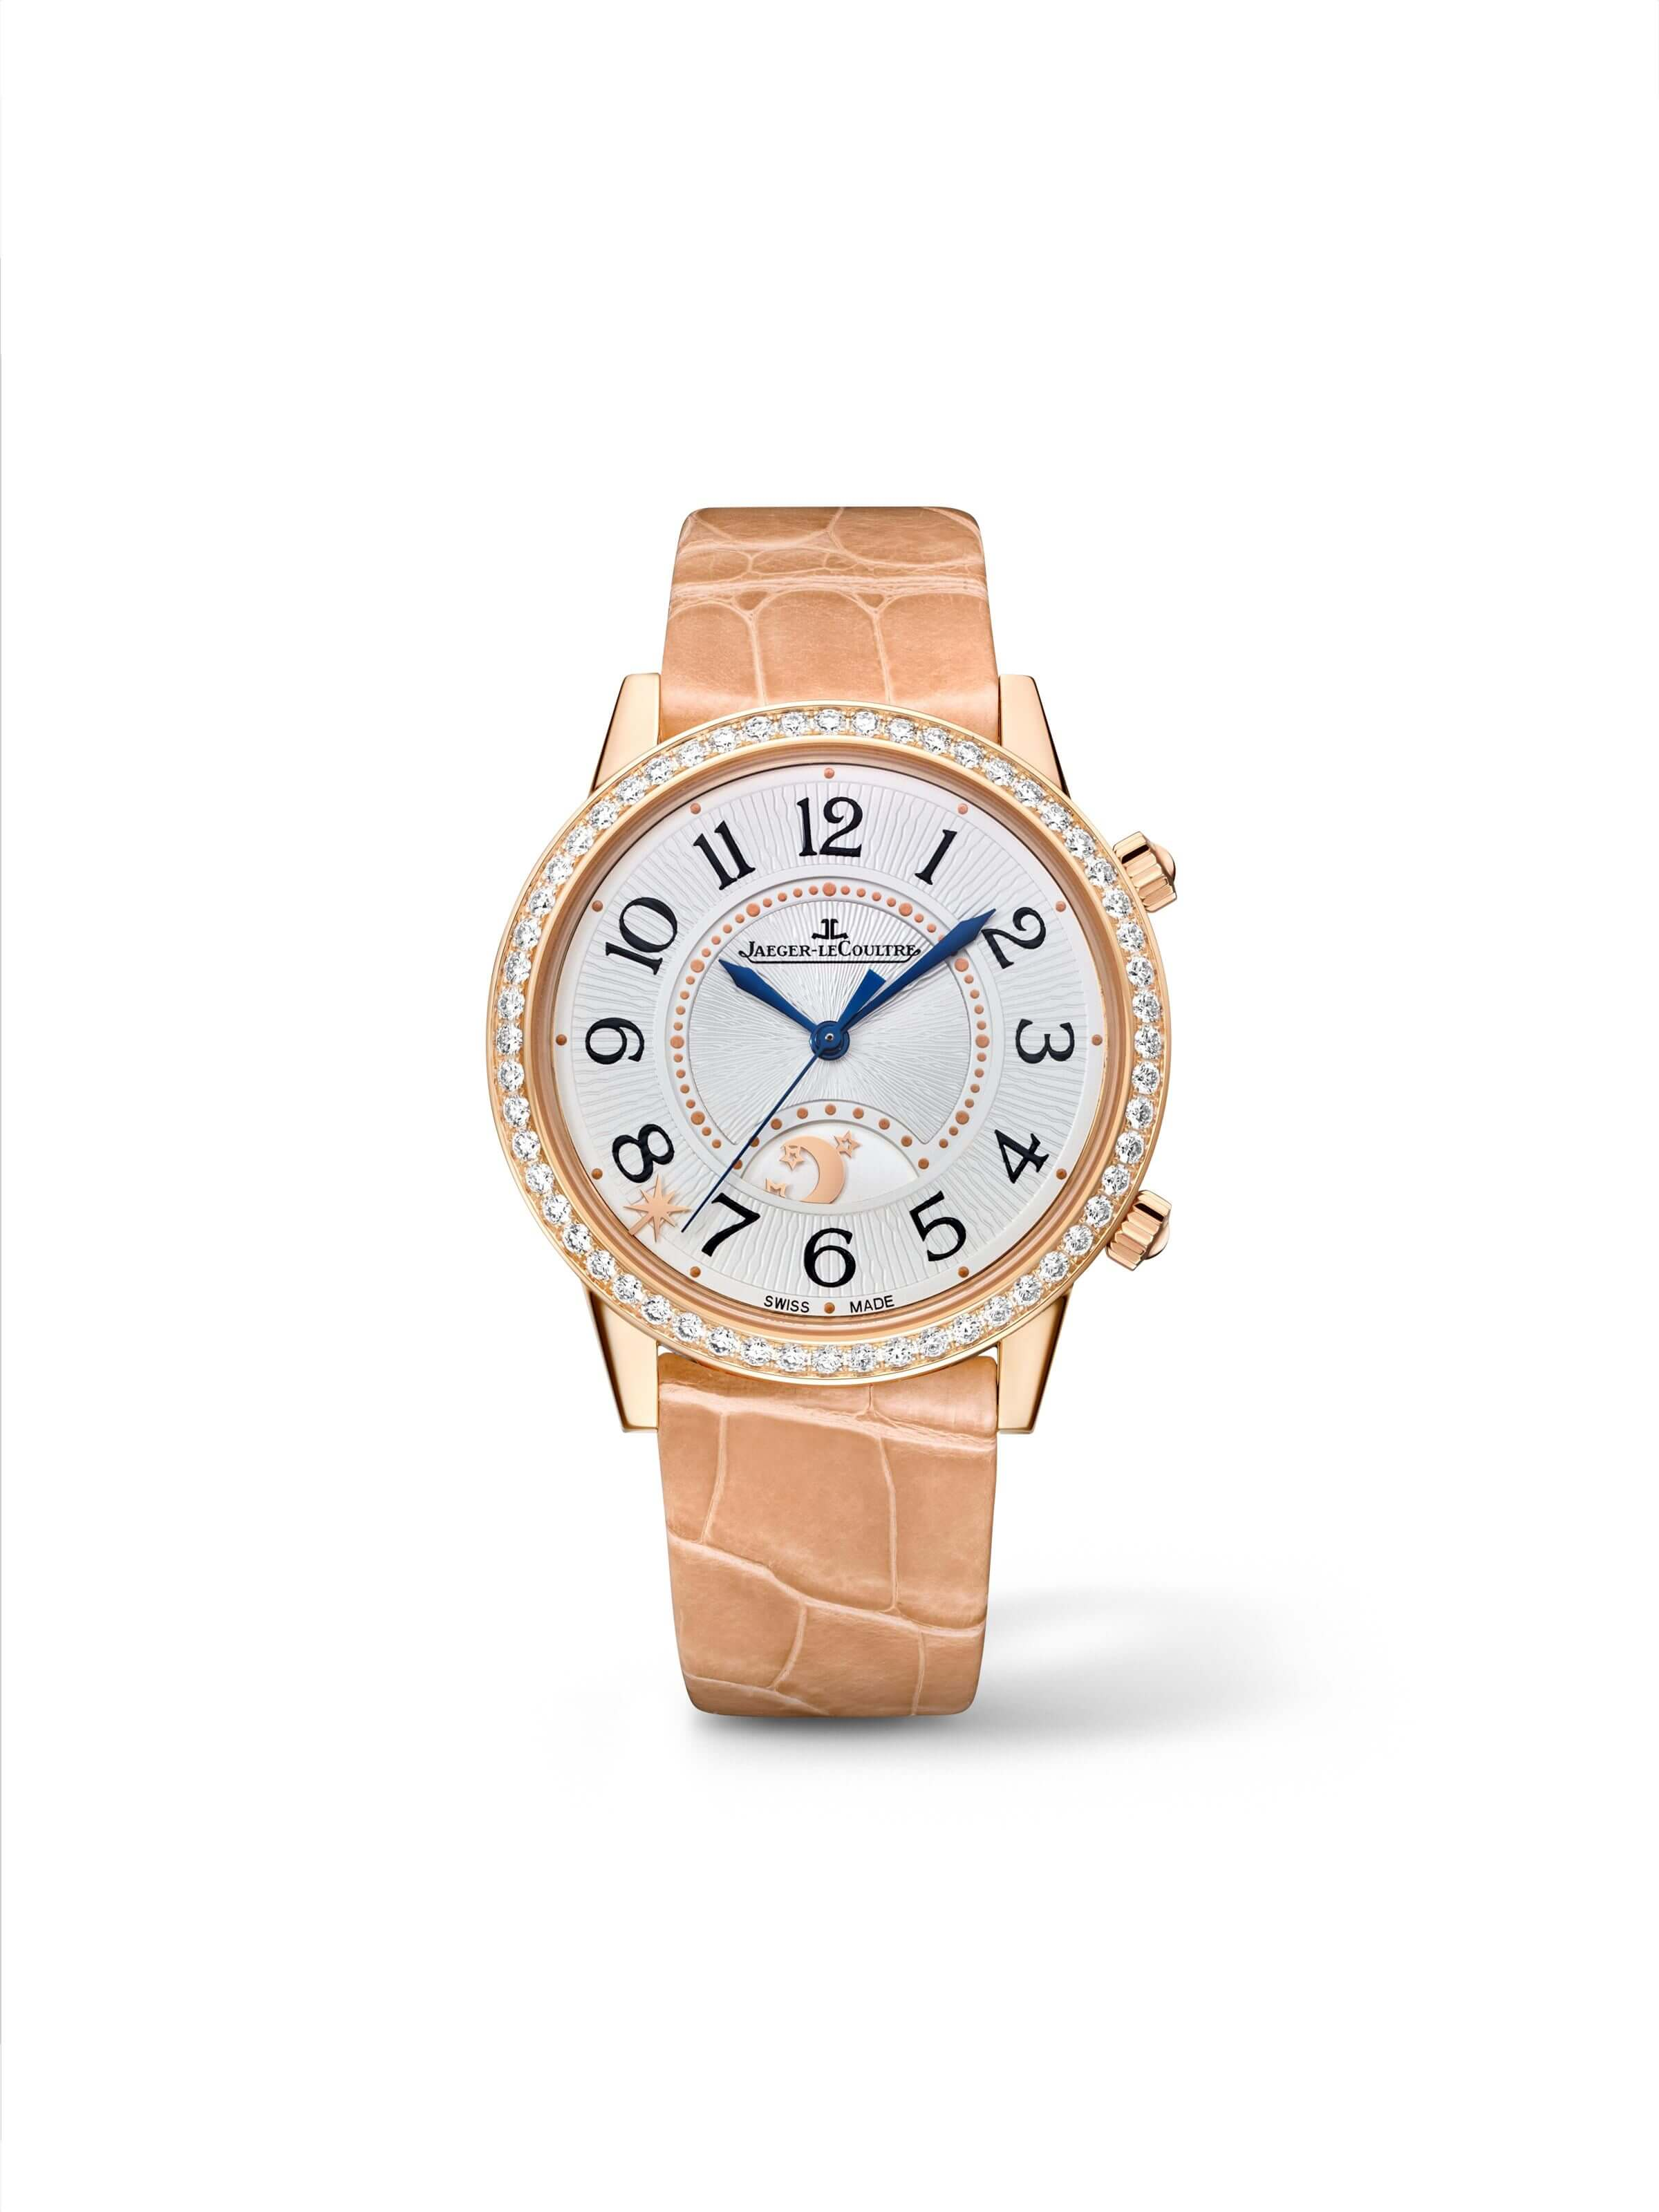 Jaeger-LeCoultre 3592420 Rendez-Vous Sonatina Large Pink Gold/Diamond/Silver Replica